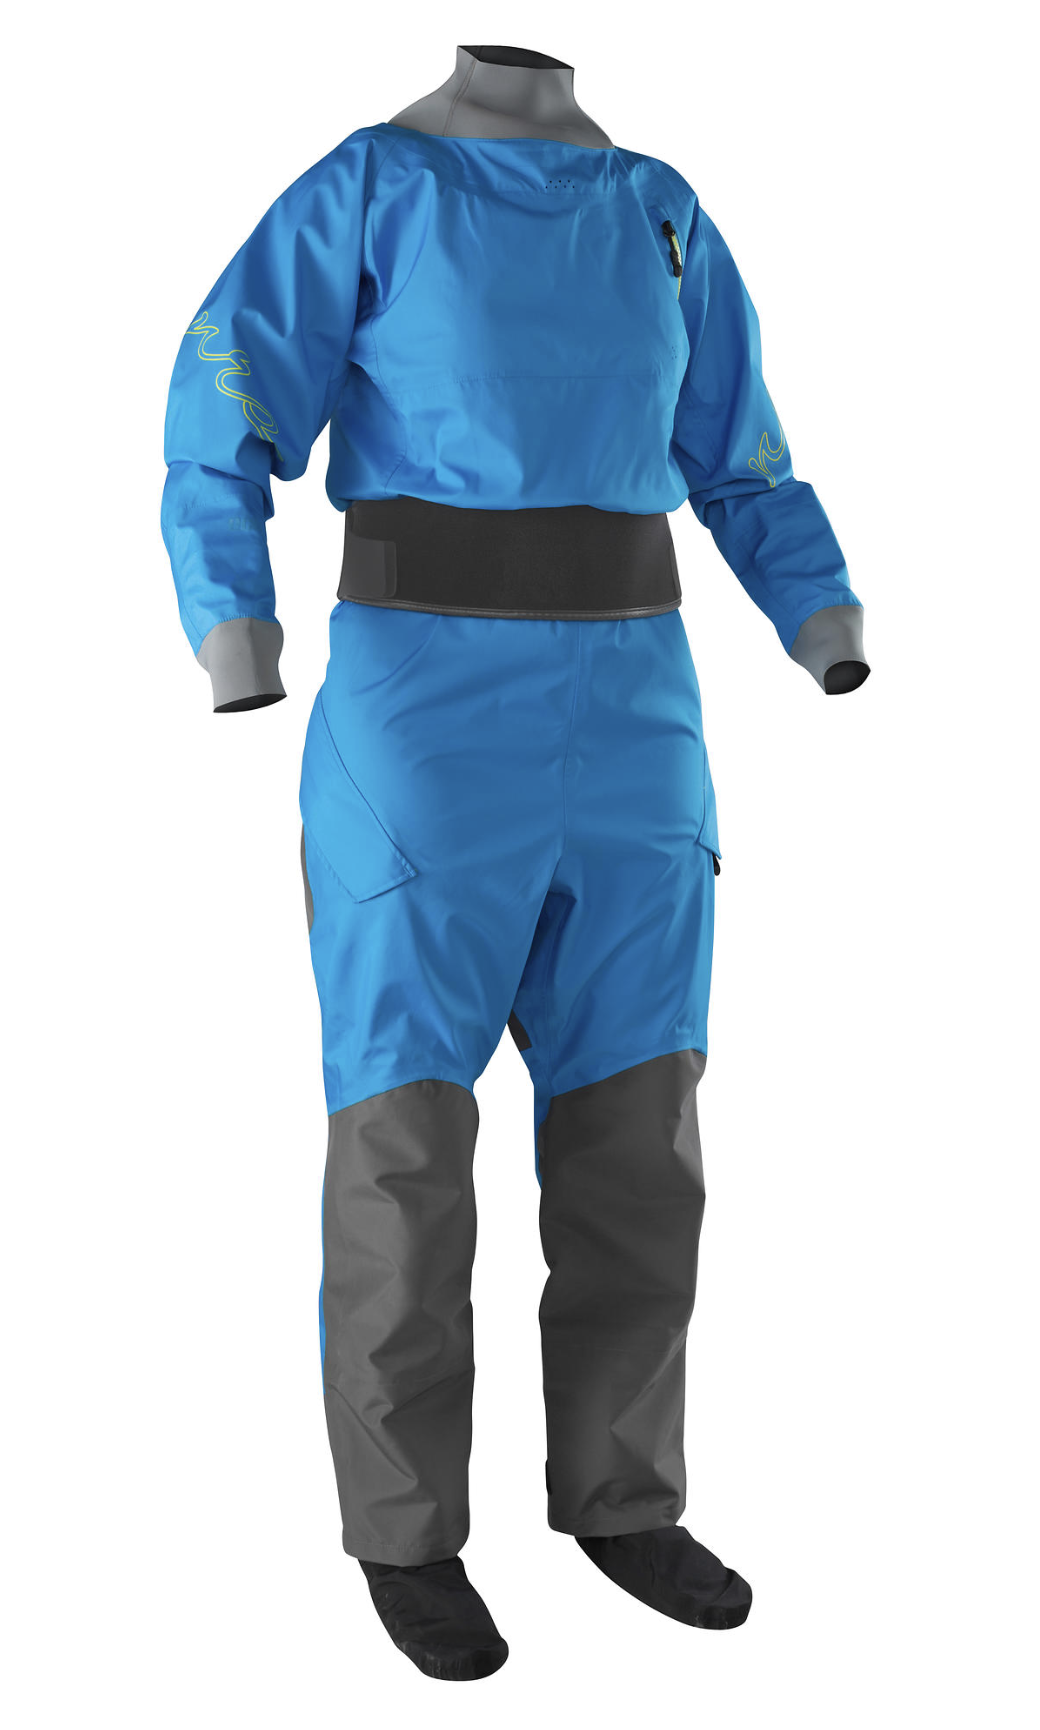 Technical Outerwear: Women's Pivot Drysuit by NRS - Image 4834